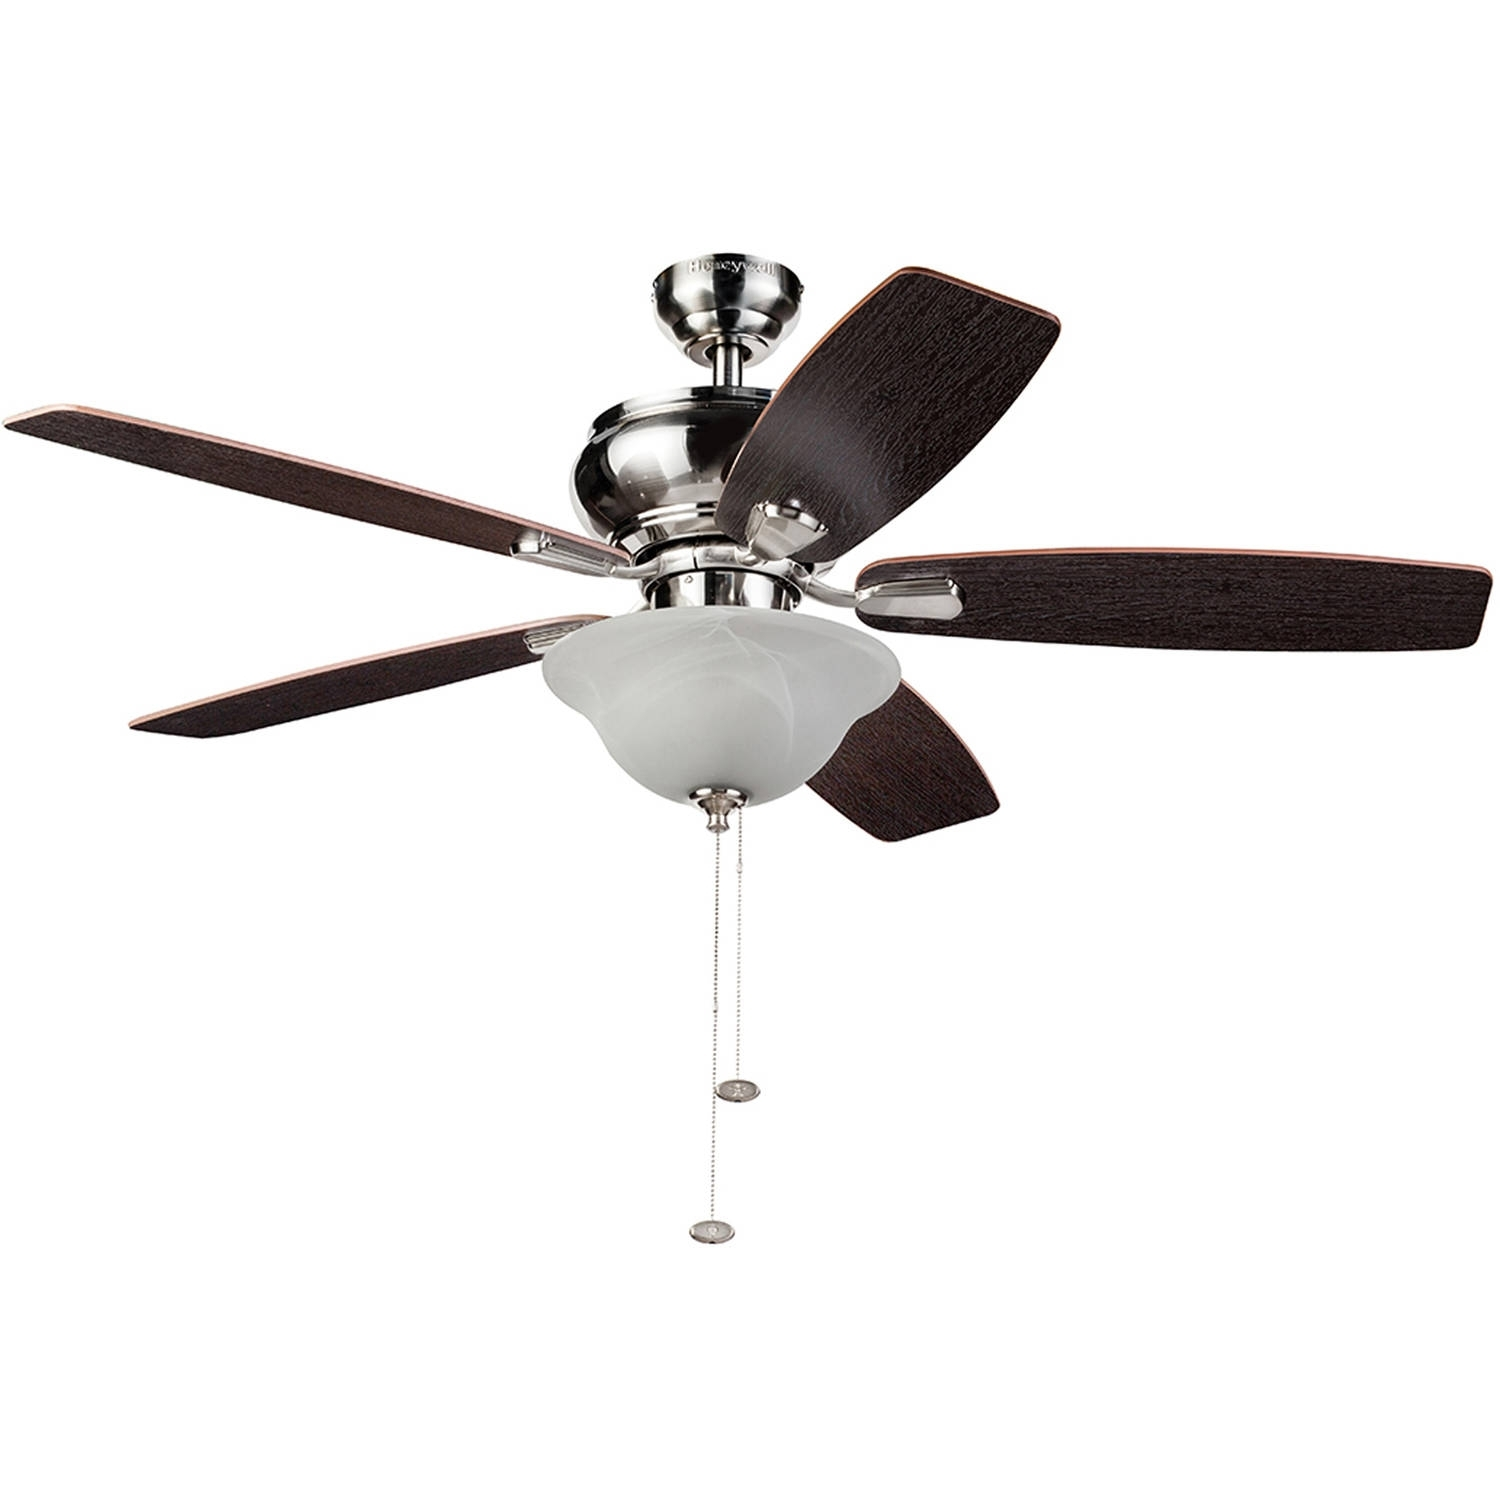 Ceiling Fans : Hunter Fans Sontera Ceiling Fan Antique Brass Walmart Pertaining To Outdoor Ceiling Fans With Lights At Walmart (#8 of 15)